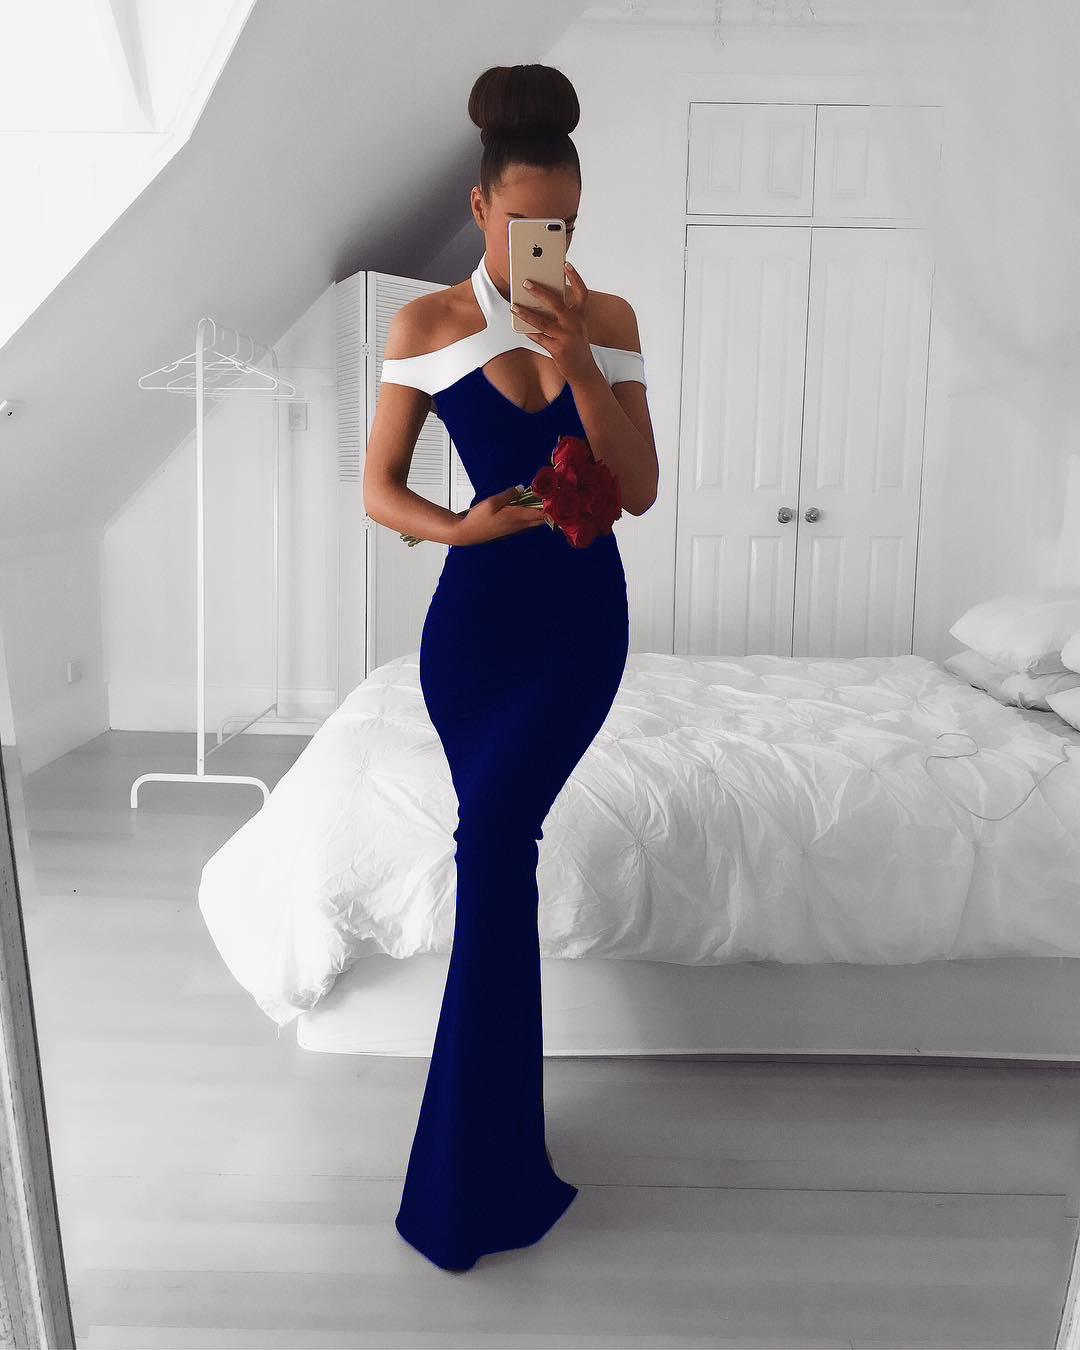 New Off The Shoulder Party Dresses Robe Hiver 2017 Work Dress Women Elegant 2017 Pencil Dress Sexy Strapless Maxi Long Dresses